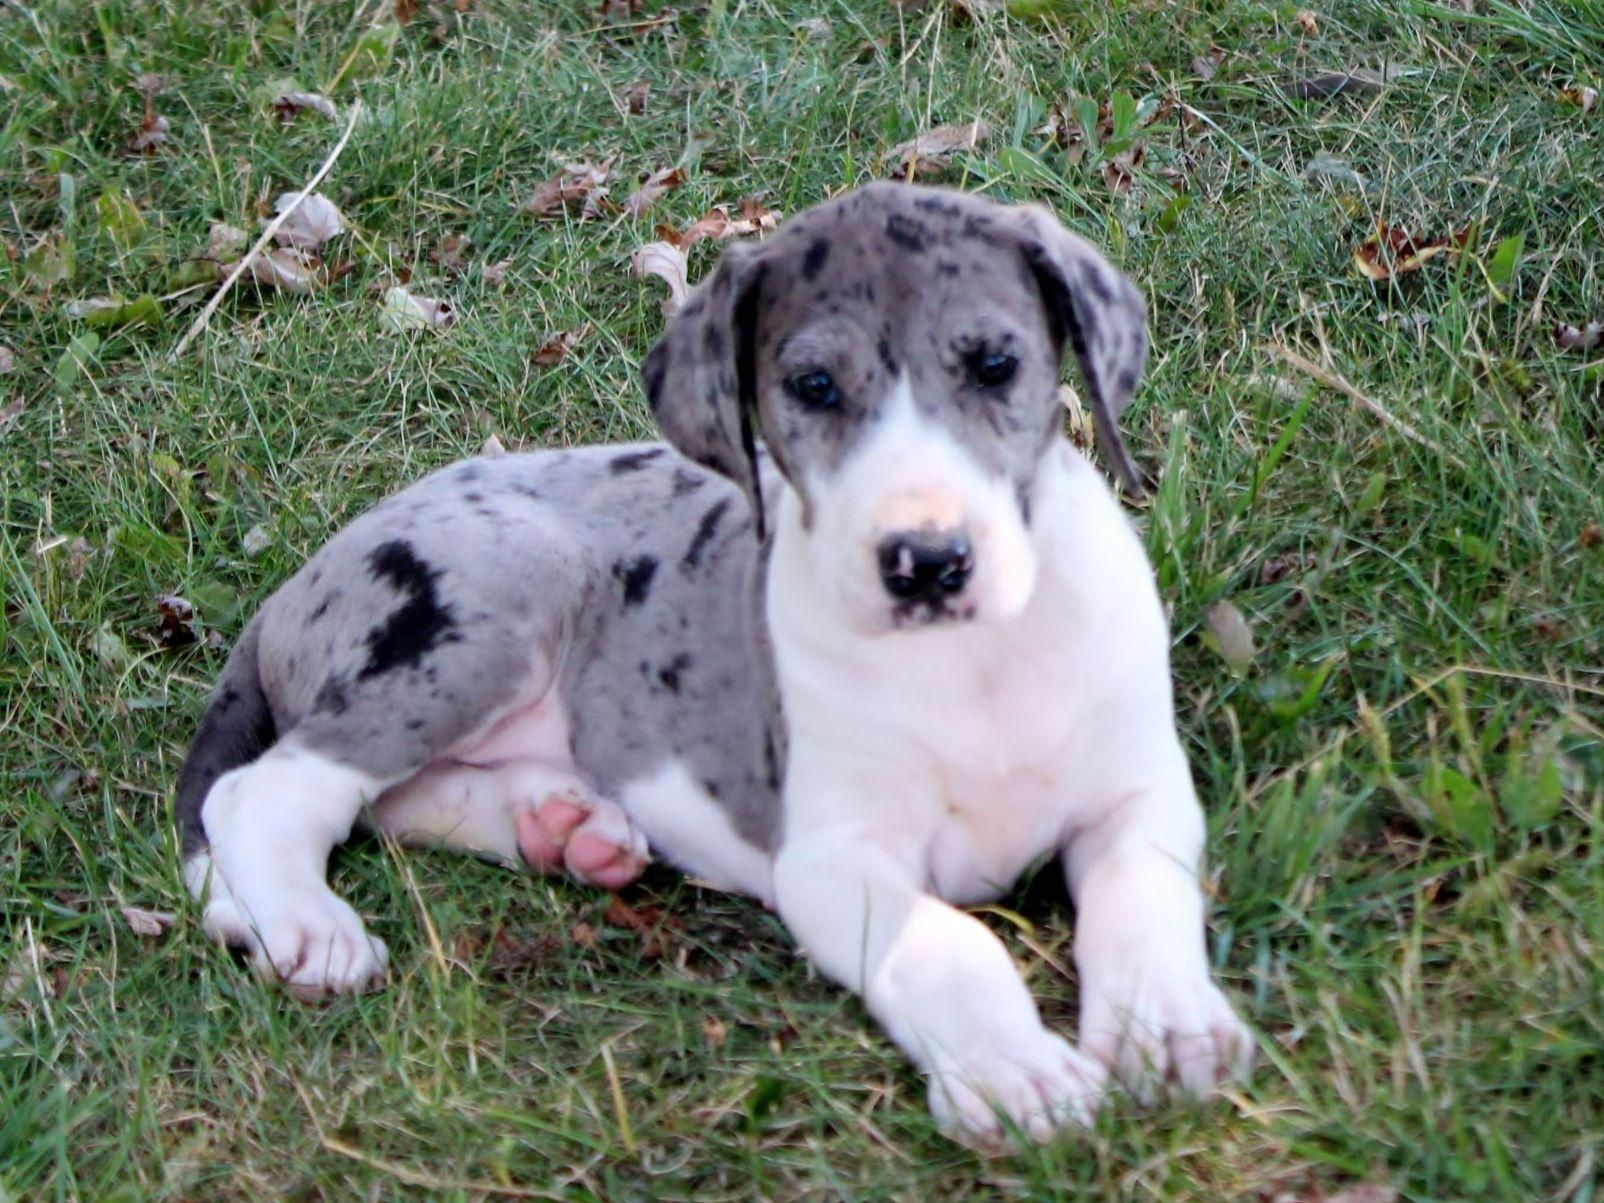 Mantle Merle Baby Merle Great Danes Great Dane Dog Show